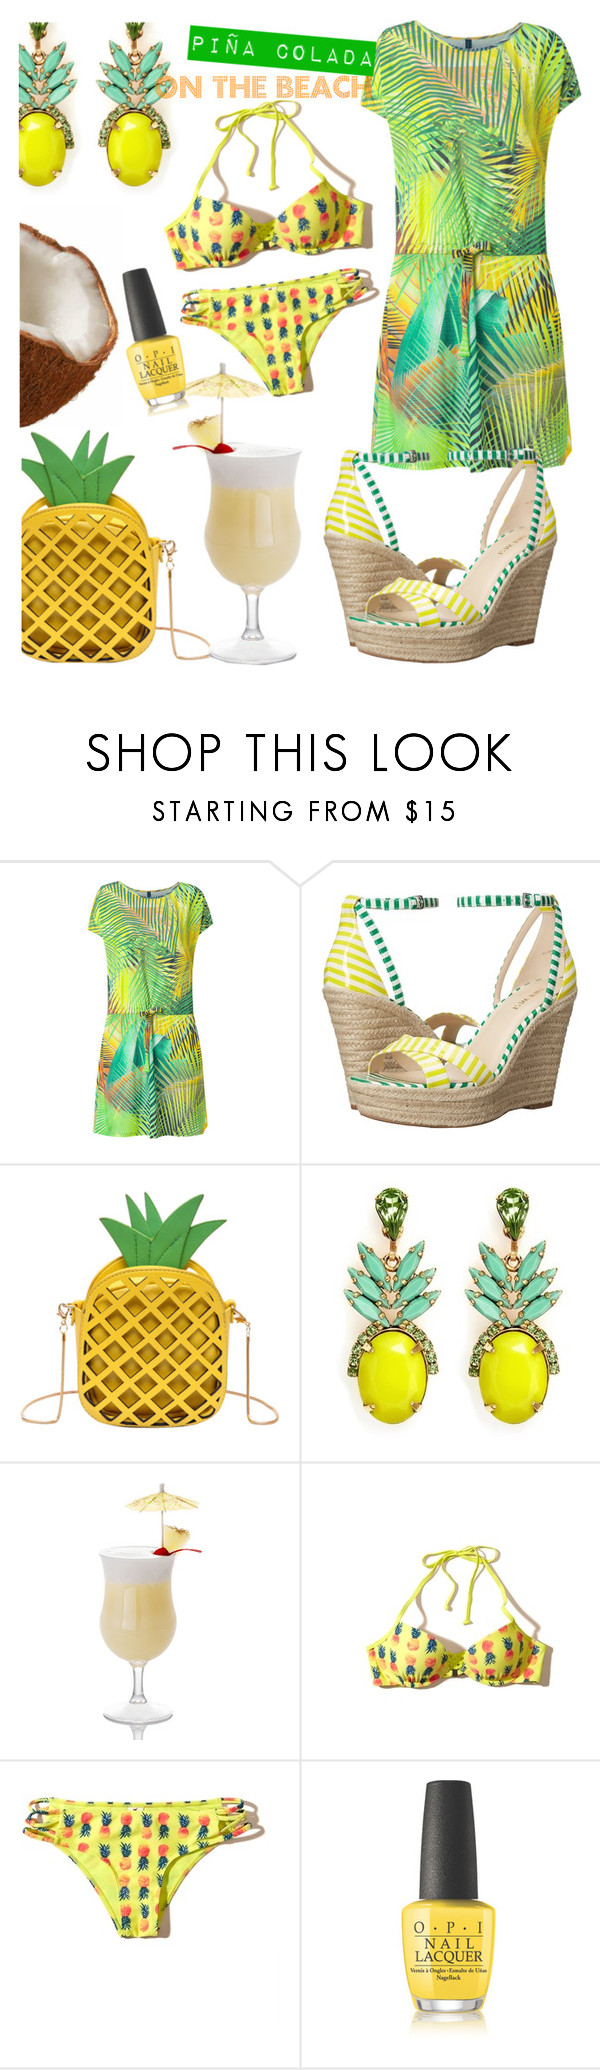 """""""Piña colada on the beach"""" by lullulu ❤ liked on Polyvore featuring Lygia & Nanny, Nine West, Elizabeth Cole, Hollister Co. and OPI"""